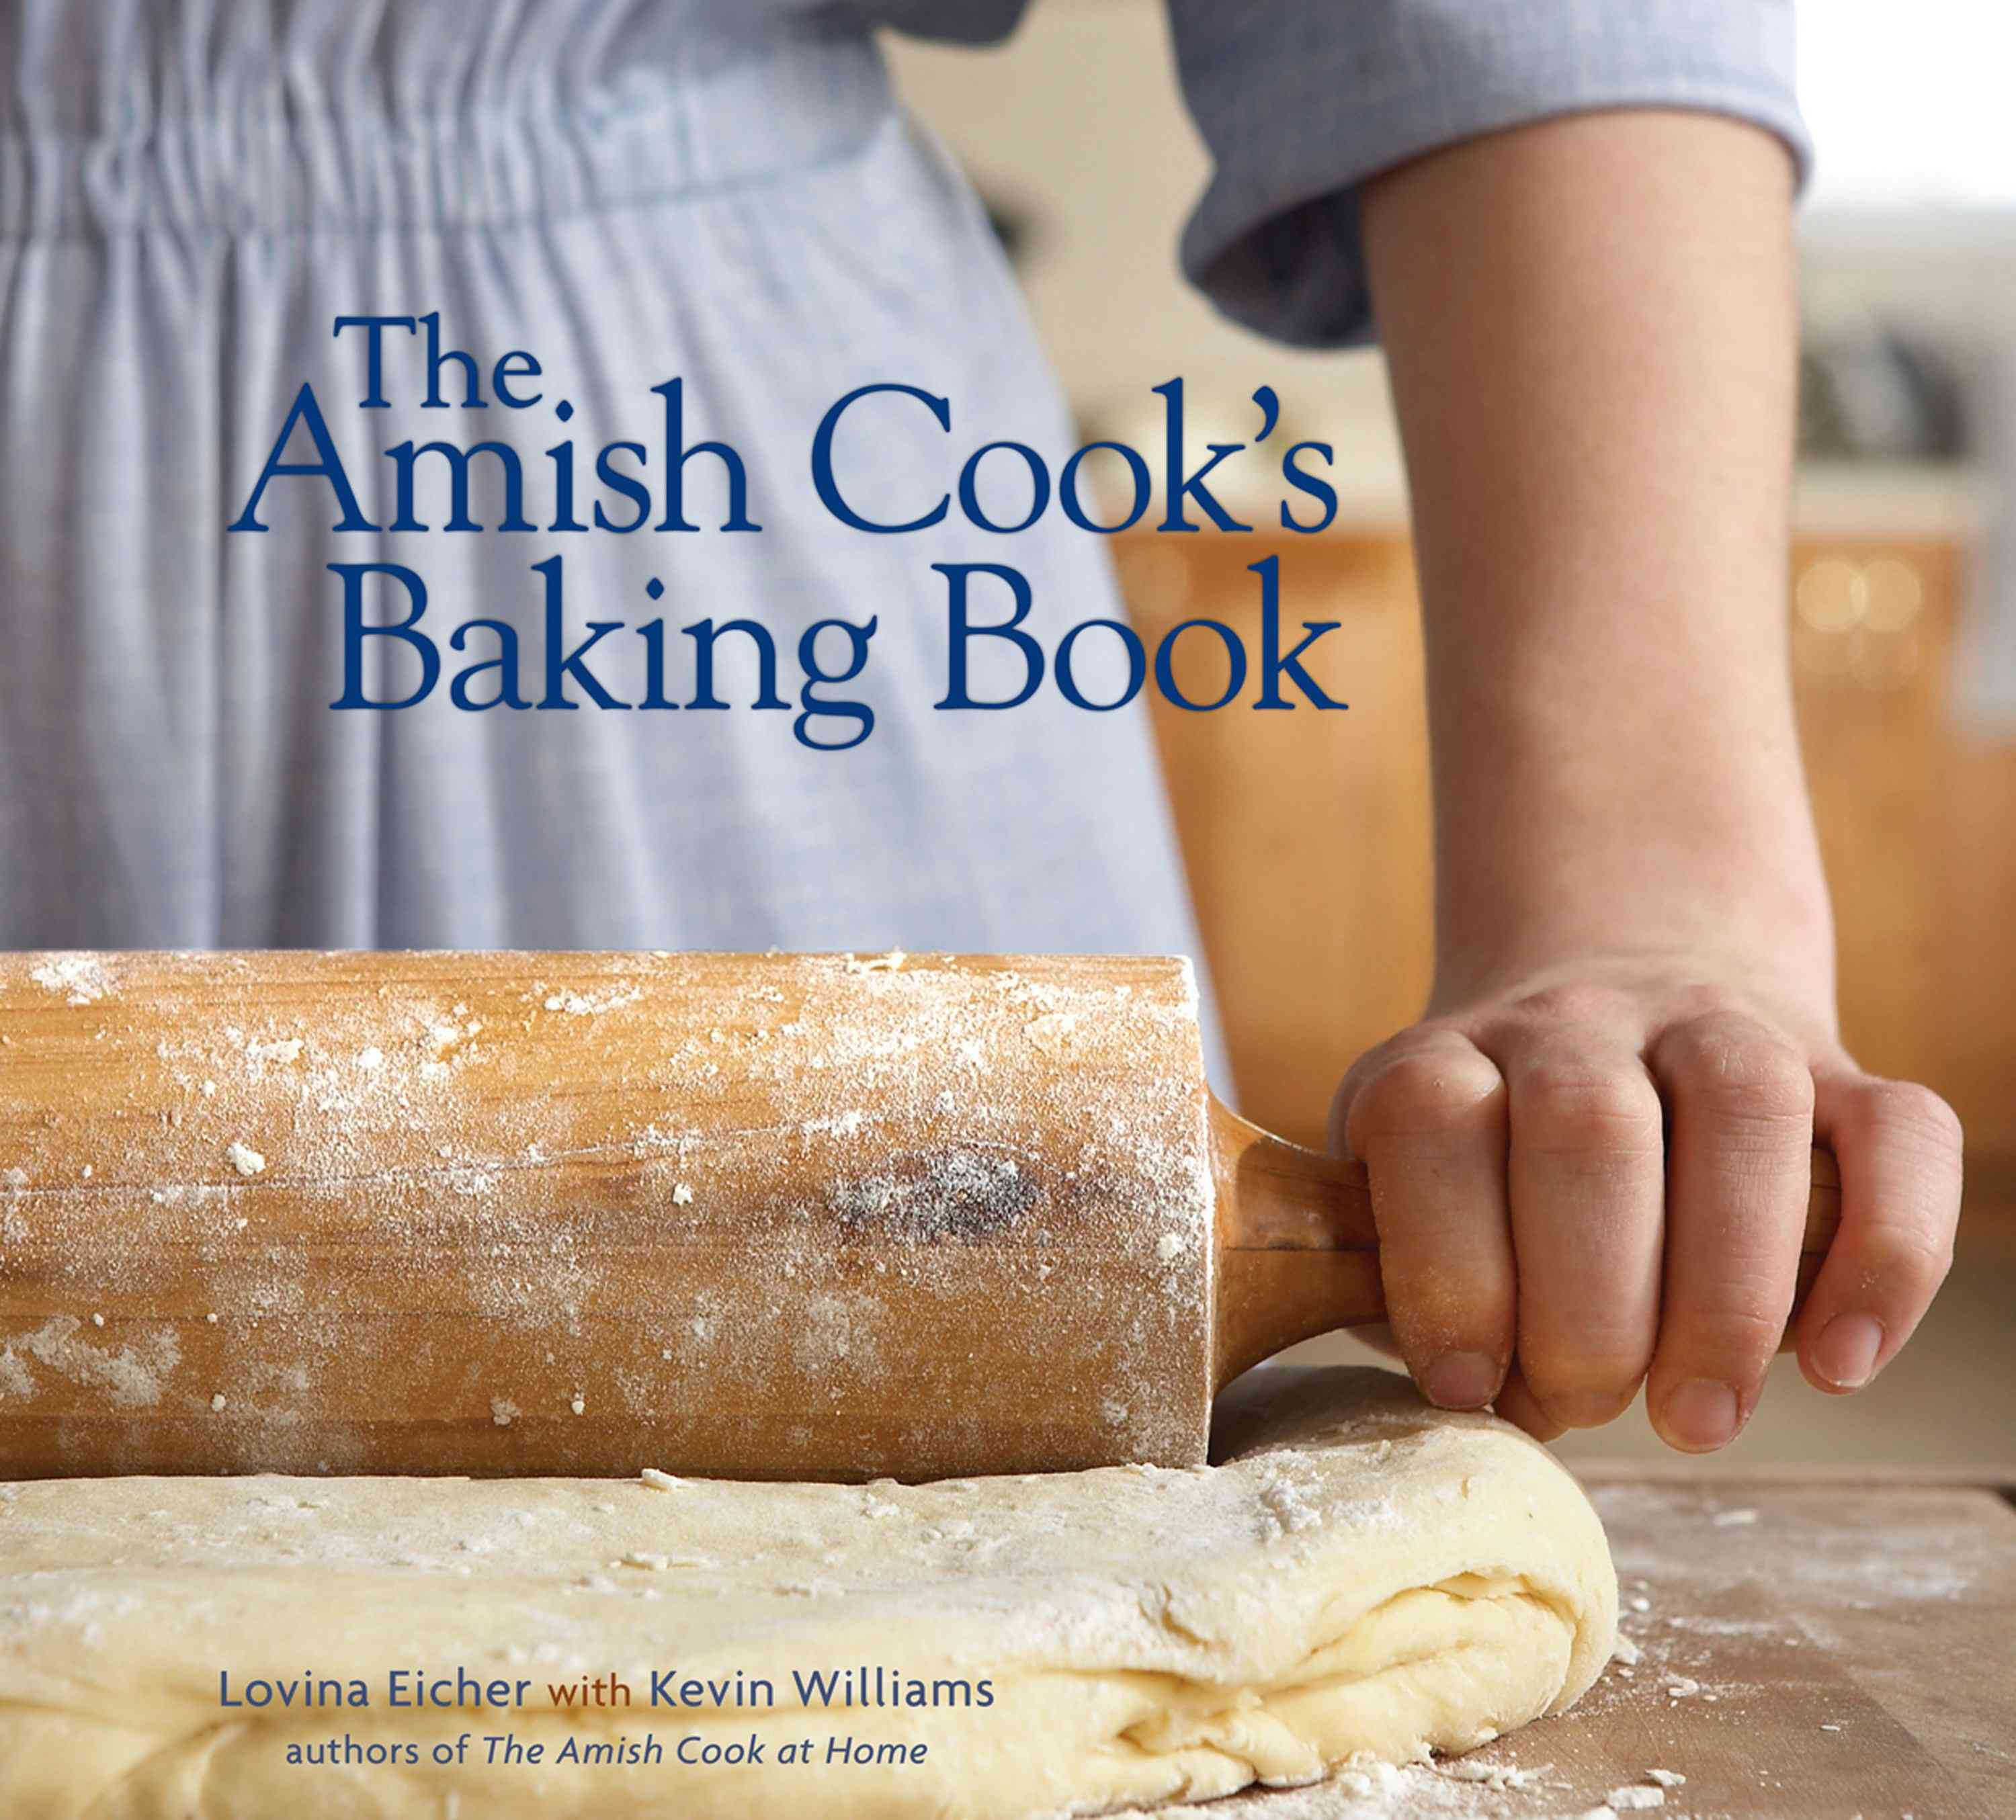 The Amish Cook's Baking Book (Hardcover)